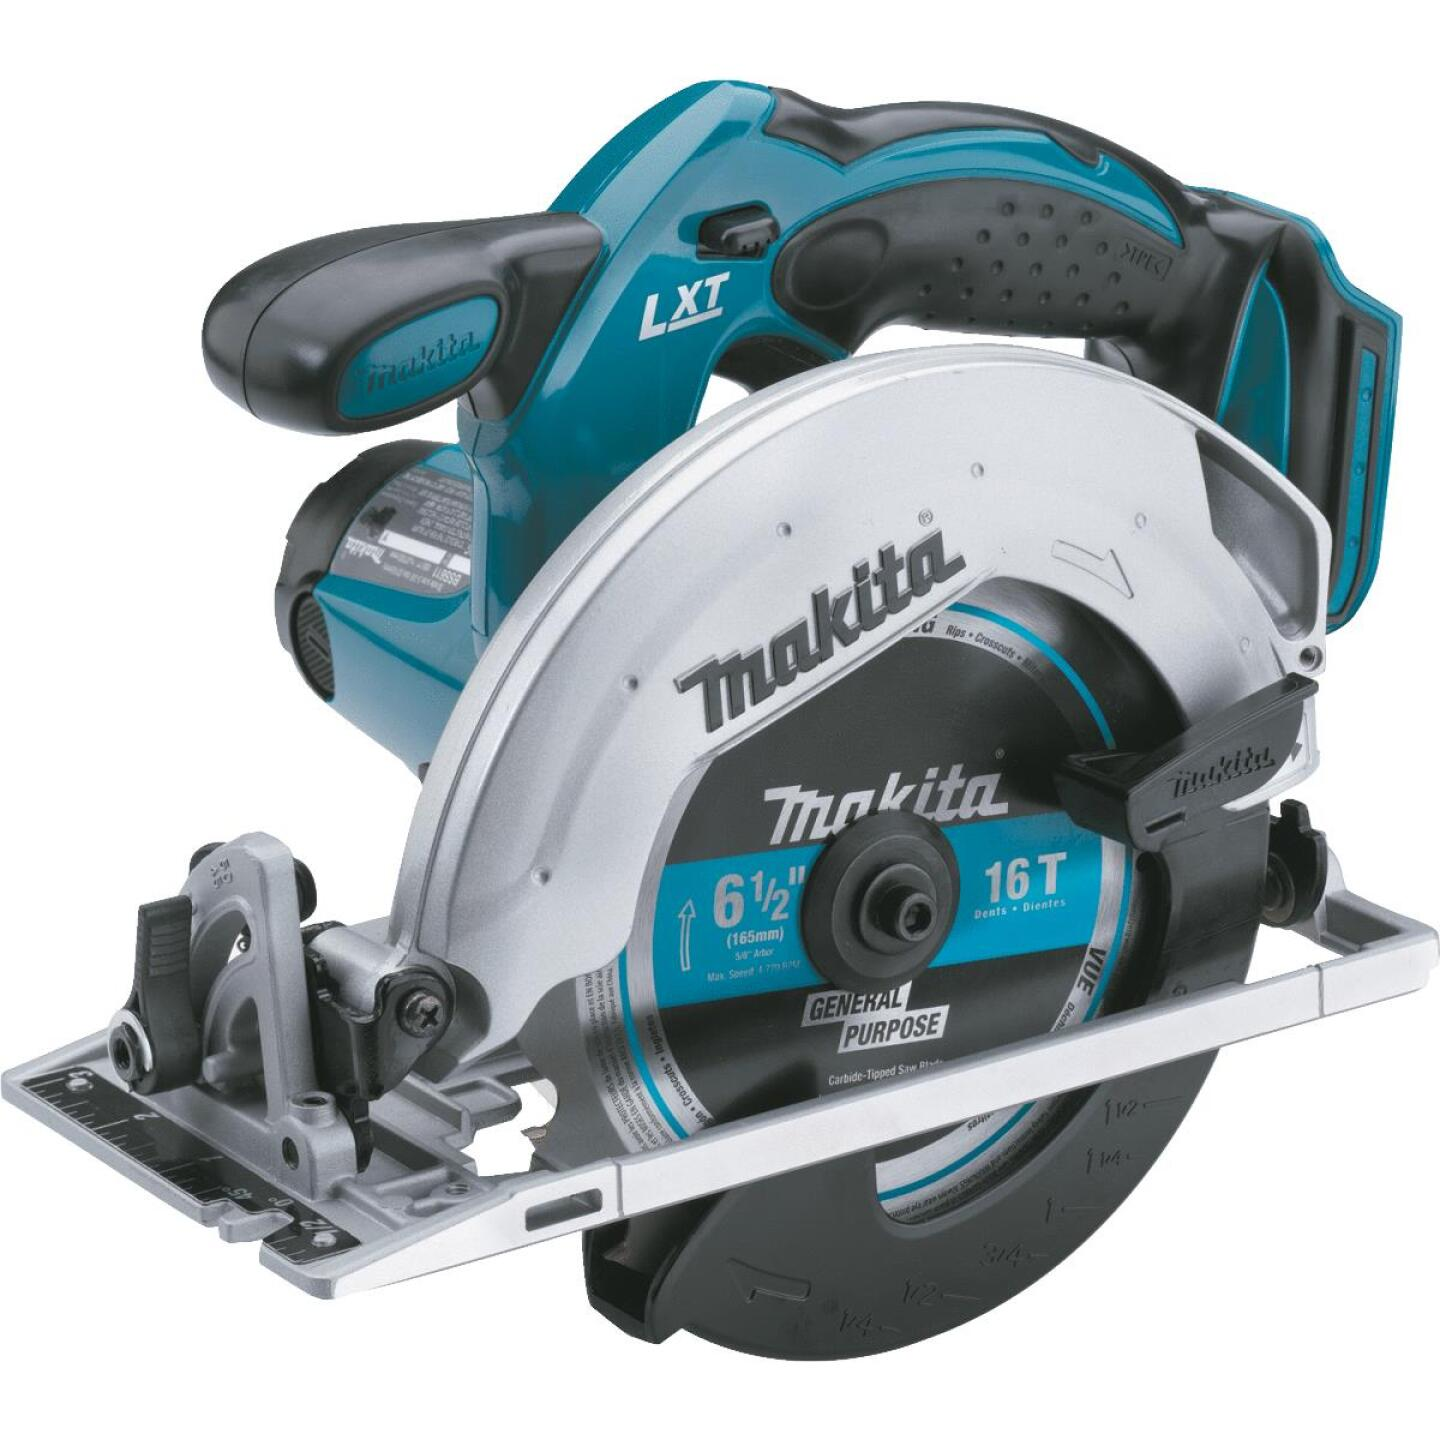 Makita 18 Volt LXT Lithium-Ion 6-1/2 In. Cordless Circular Saw (Bare Tool) Image 1